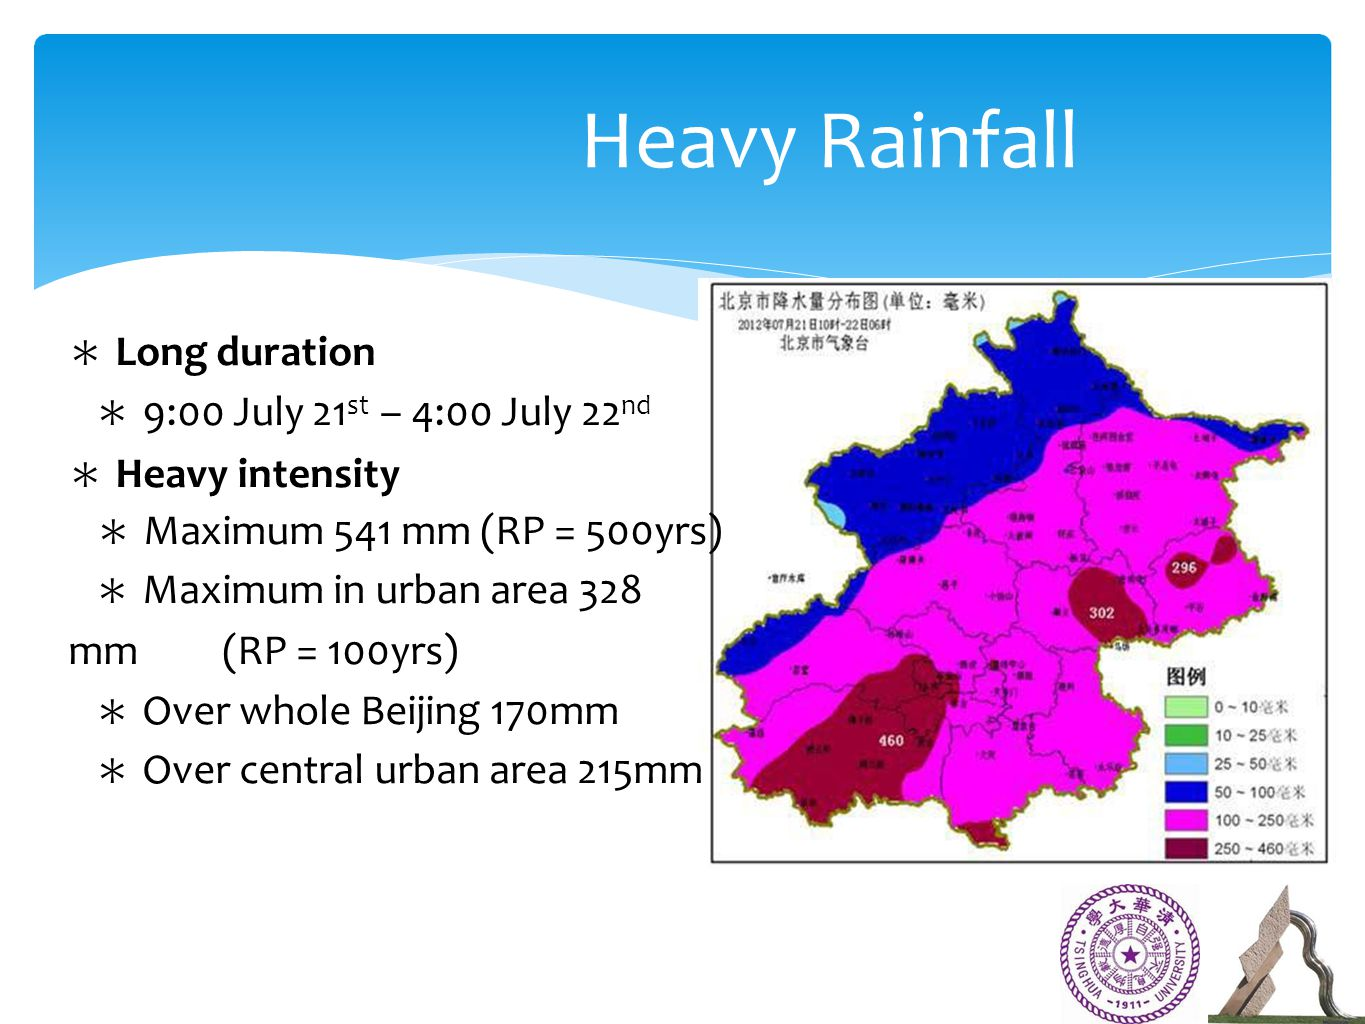 ∗ Long duration ∗ 9:00 July 21 st – 4:00 July 22 nd ∗ Heavy intensity ∗ Maximum 541 mm (RP = 500yrs) ∗ Maximum in urban area 328 mm (RP = 100yrs) ∗ Over whole Beijing 170mm ∗ Over central urban area 215mm Heavy Rainfall